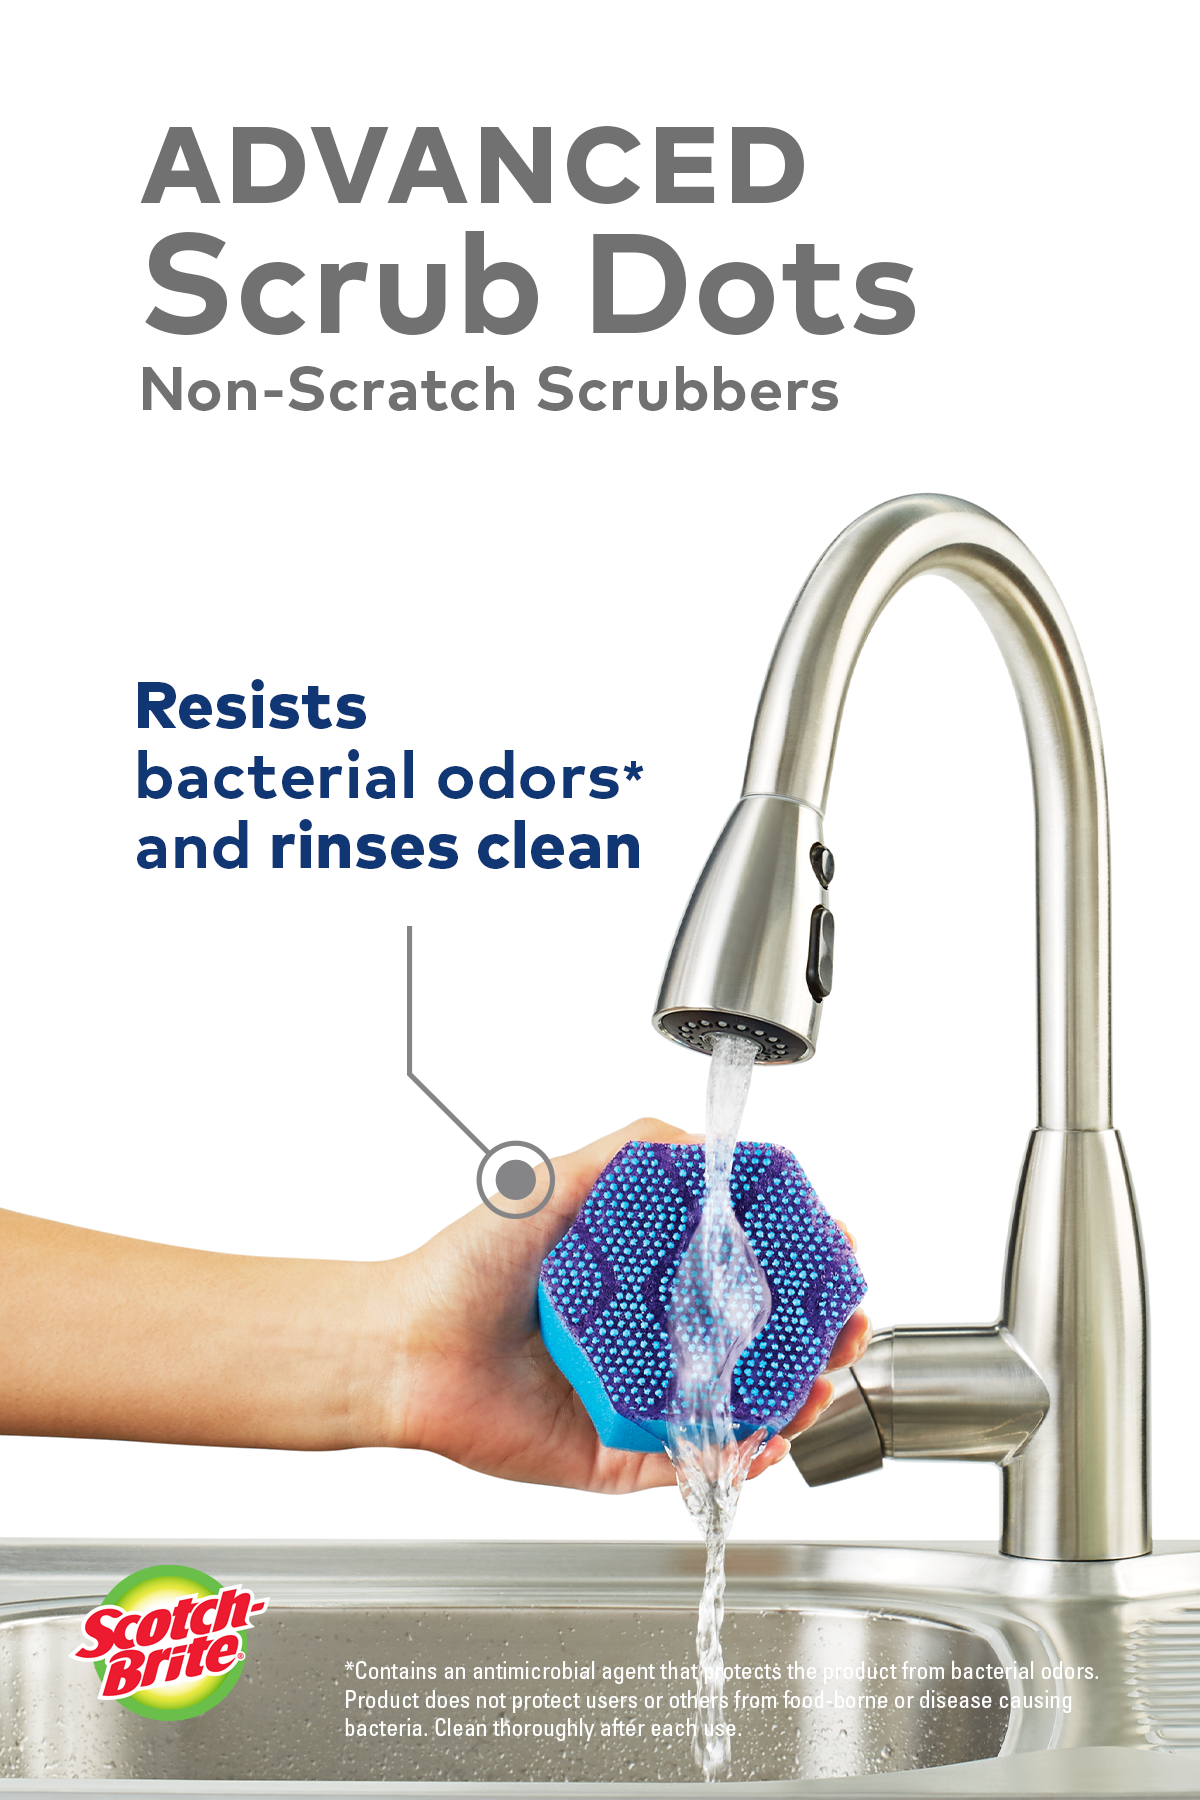 Scotch-Brite® Advanced Scrub Dots Non-Scratch Scru